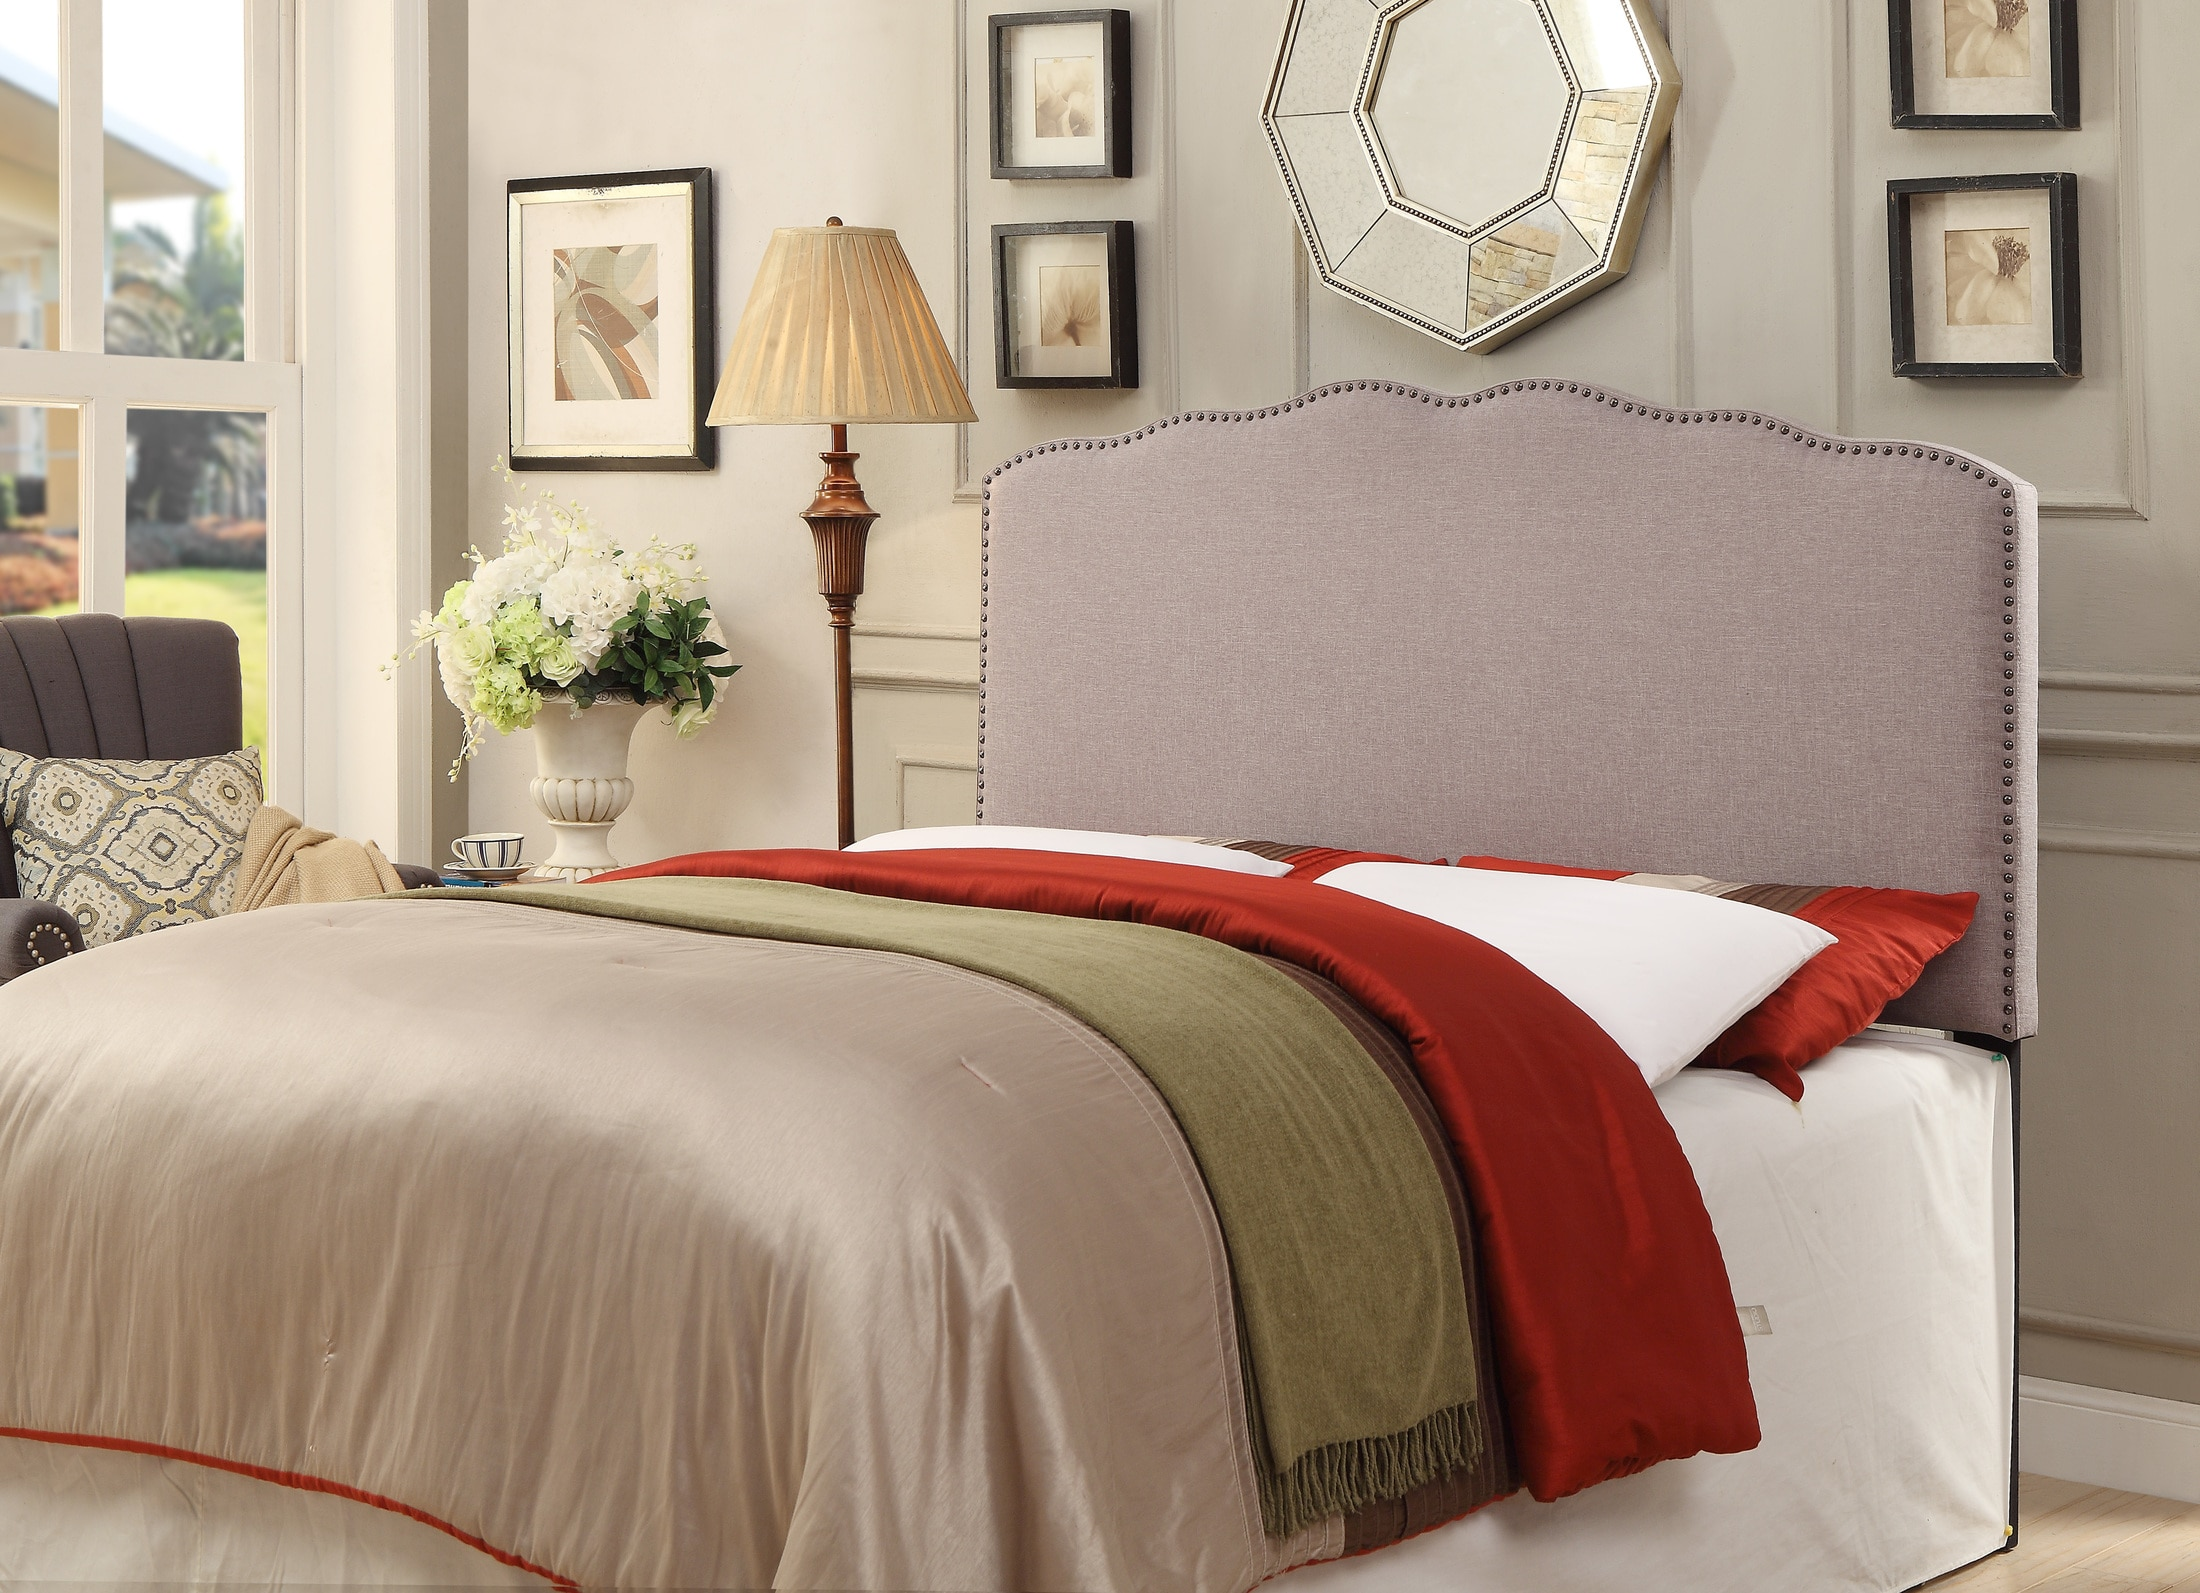 Bedroom Furniture - Aubrey Queen Upholstered Headboard